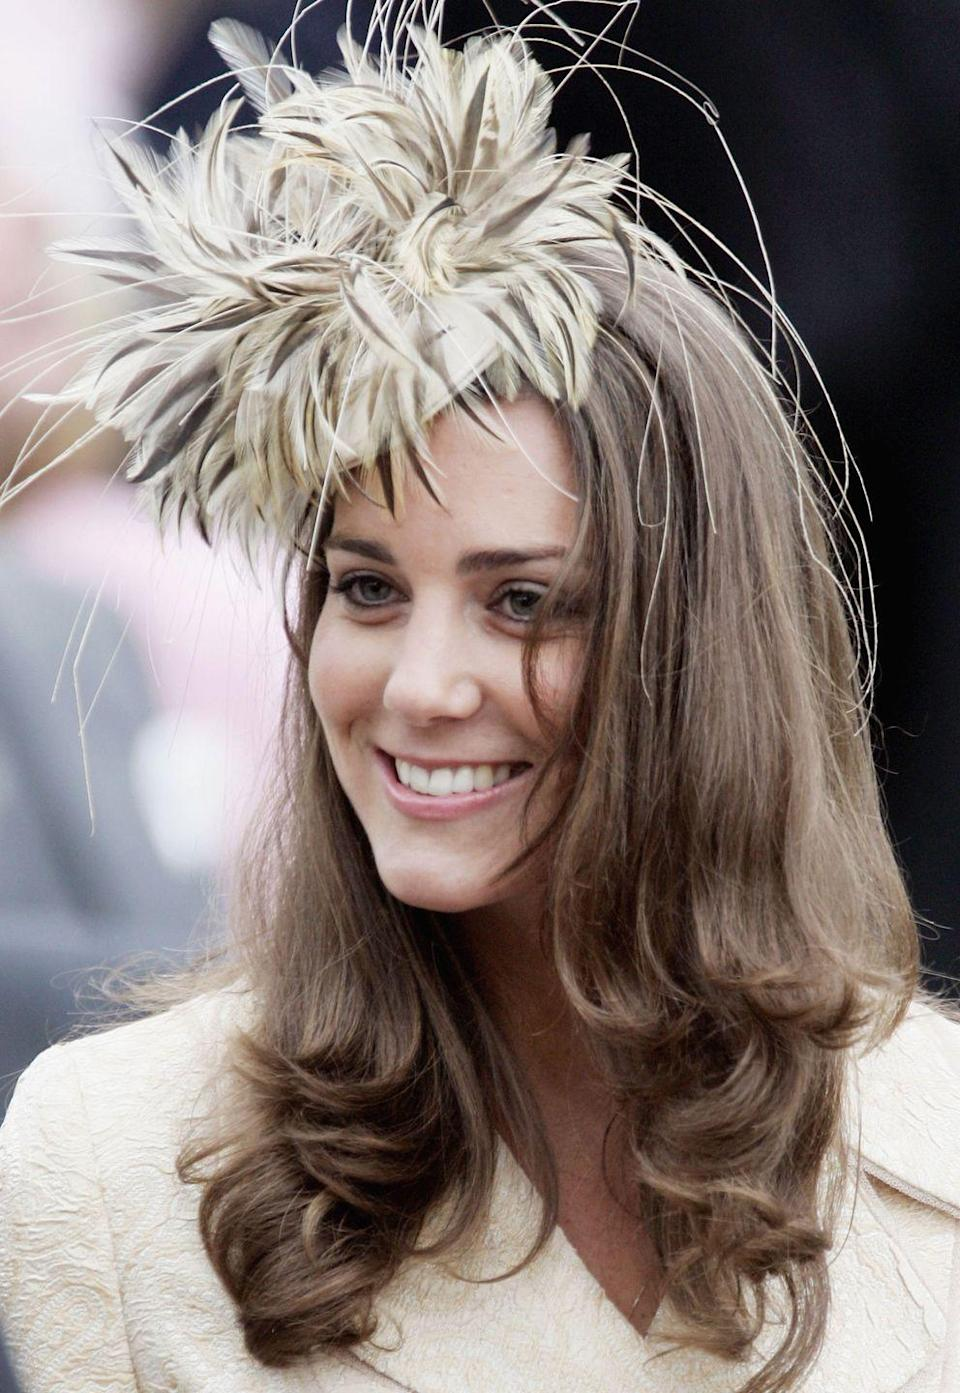 "<p>The future Duchess smiled at the wedding of Laura Parker-Bowles and Harry Lopes in Wiltshire. We like to think this is where <a href=""https://www.townandcountrymag.com/society/tradition/g26799866/kate-middleton-best-hat-moments/"" rel=""nofollow noopener"" target=""_blank"" data-ylk=""slk:Middleton's hat moments"" class=""link rapid-noclick-resp"">Middleton's hat moments</a> began.</p>"